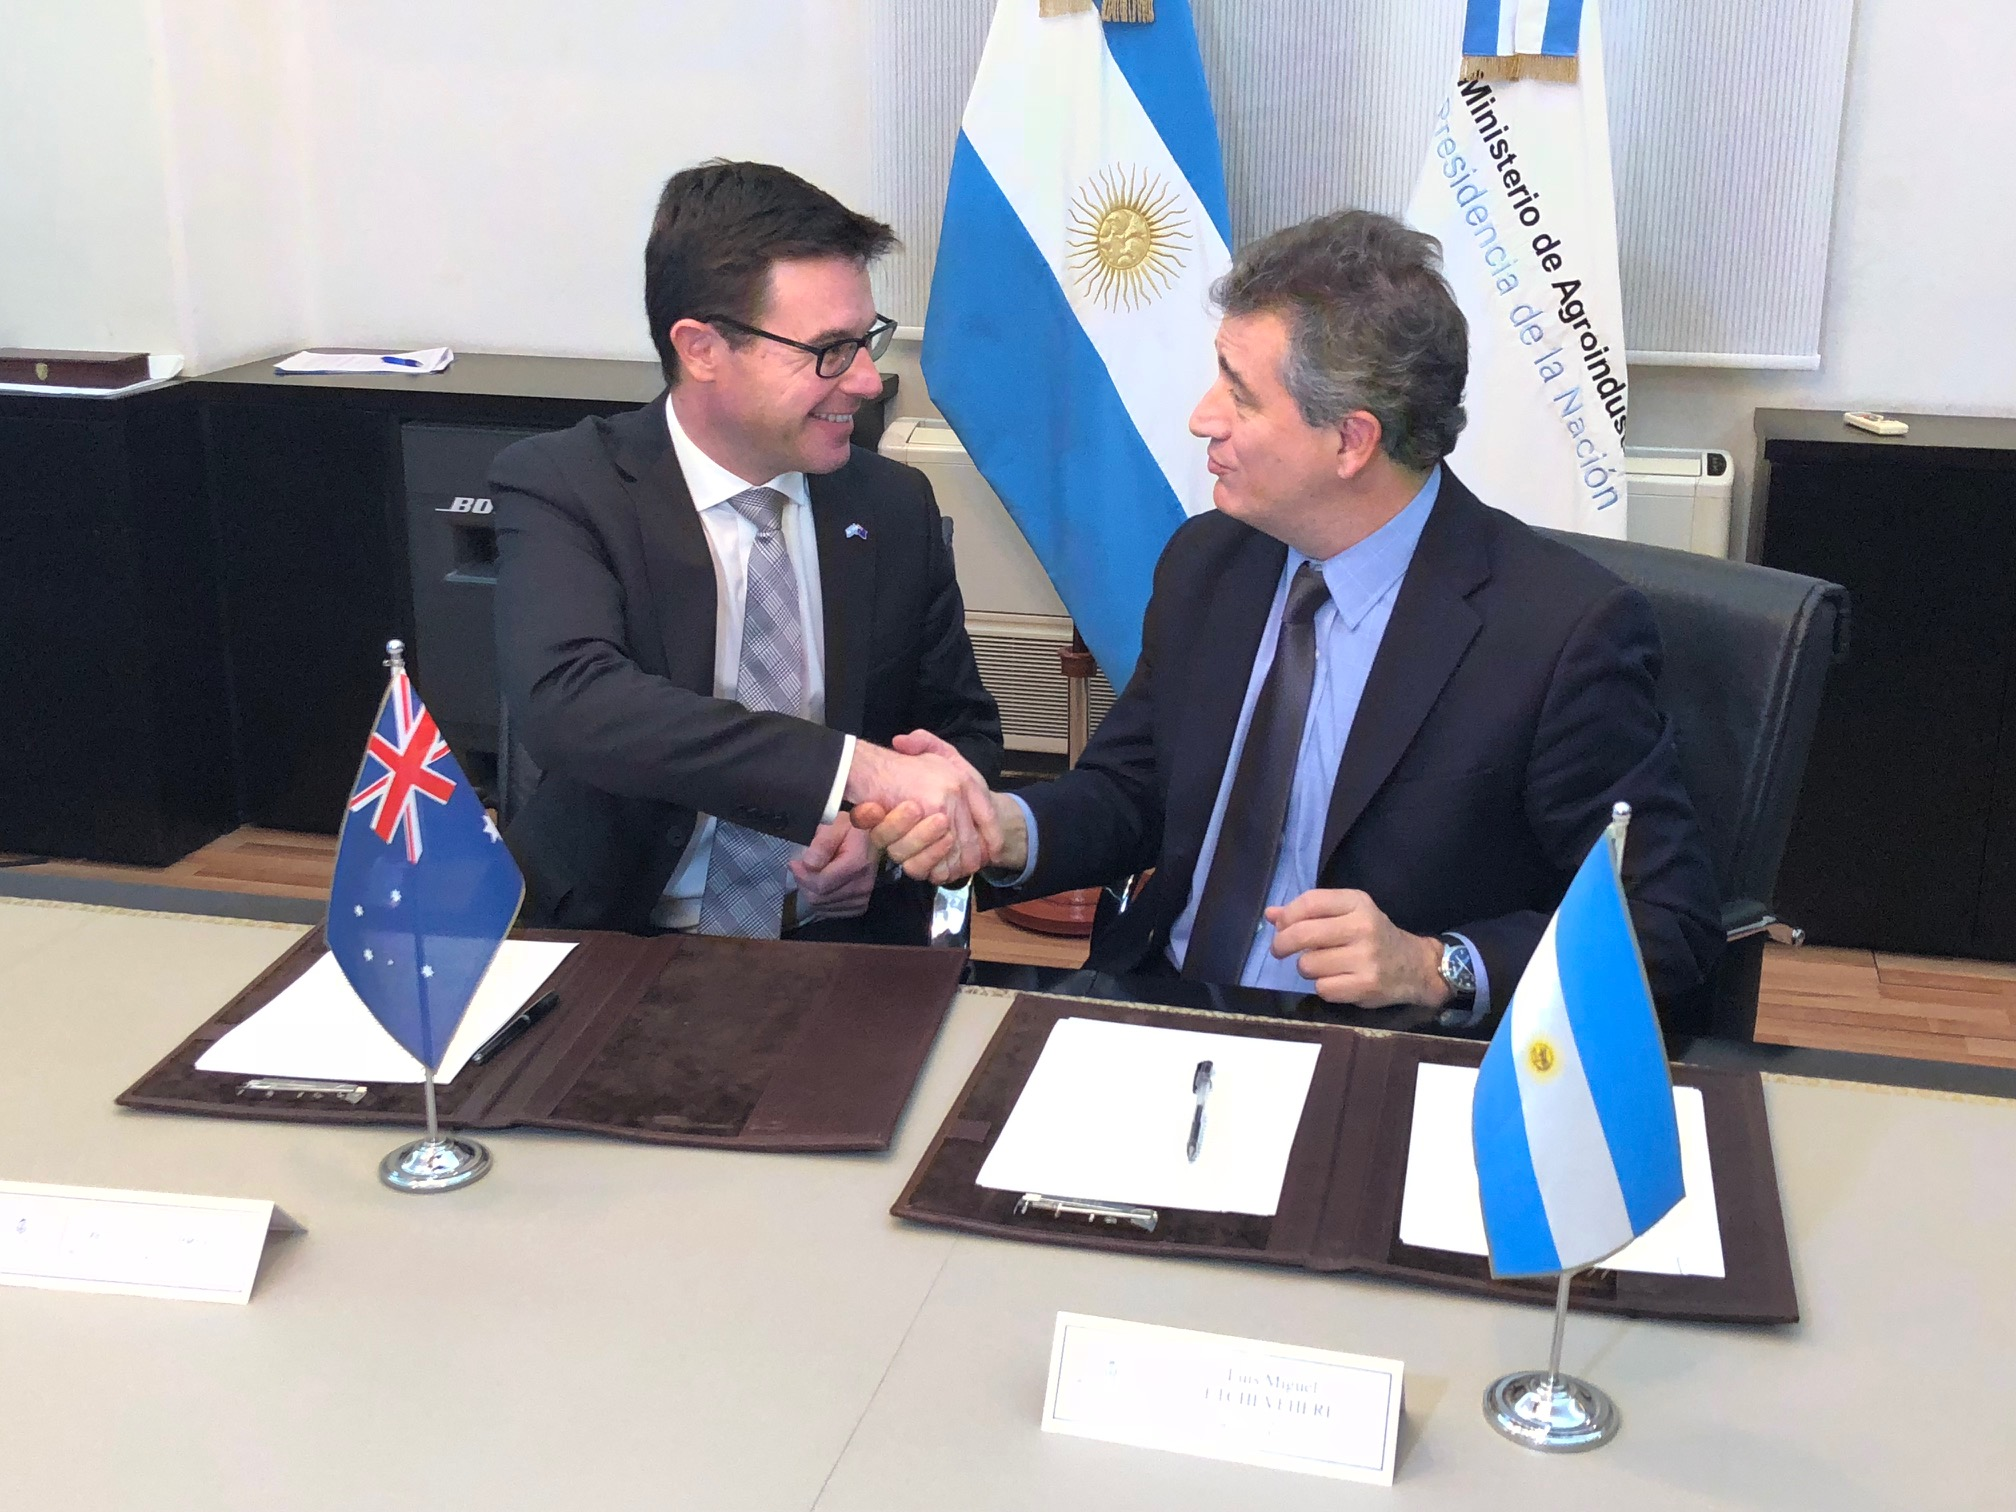 Minister David Littleproud and his counterpart Argentina's Minister for Agroindustry, Dr Luis Miguel Etchevehere signing the High Level Agricultural Dialogue communique